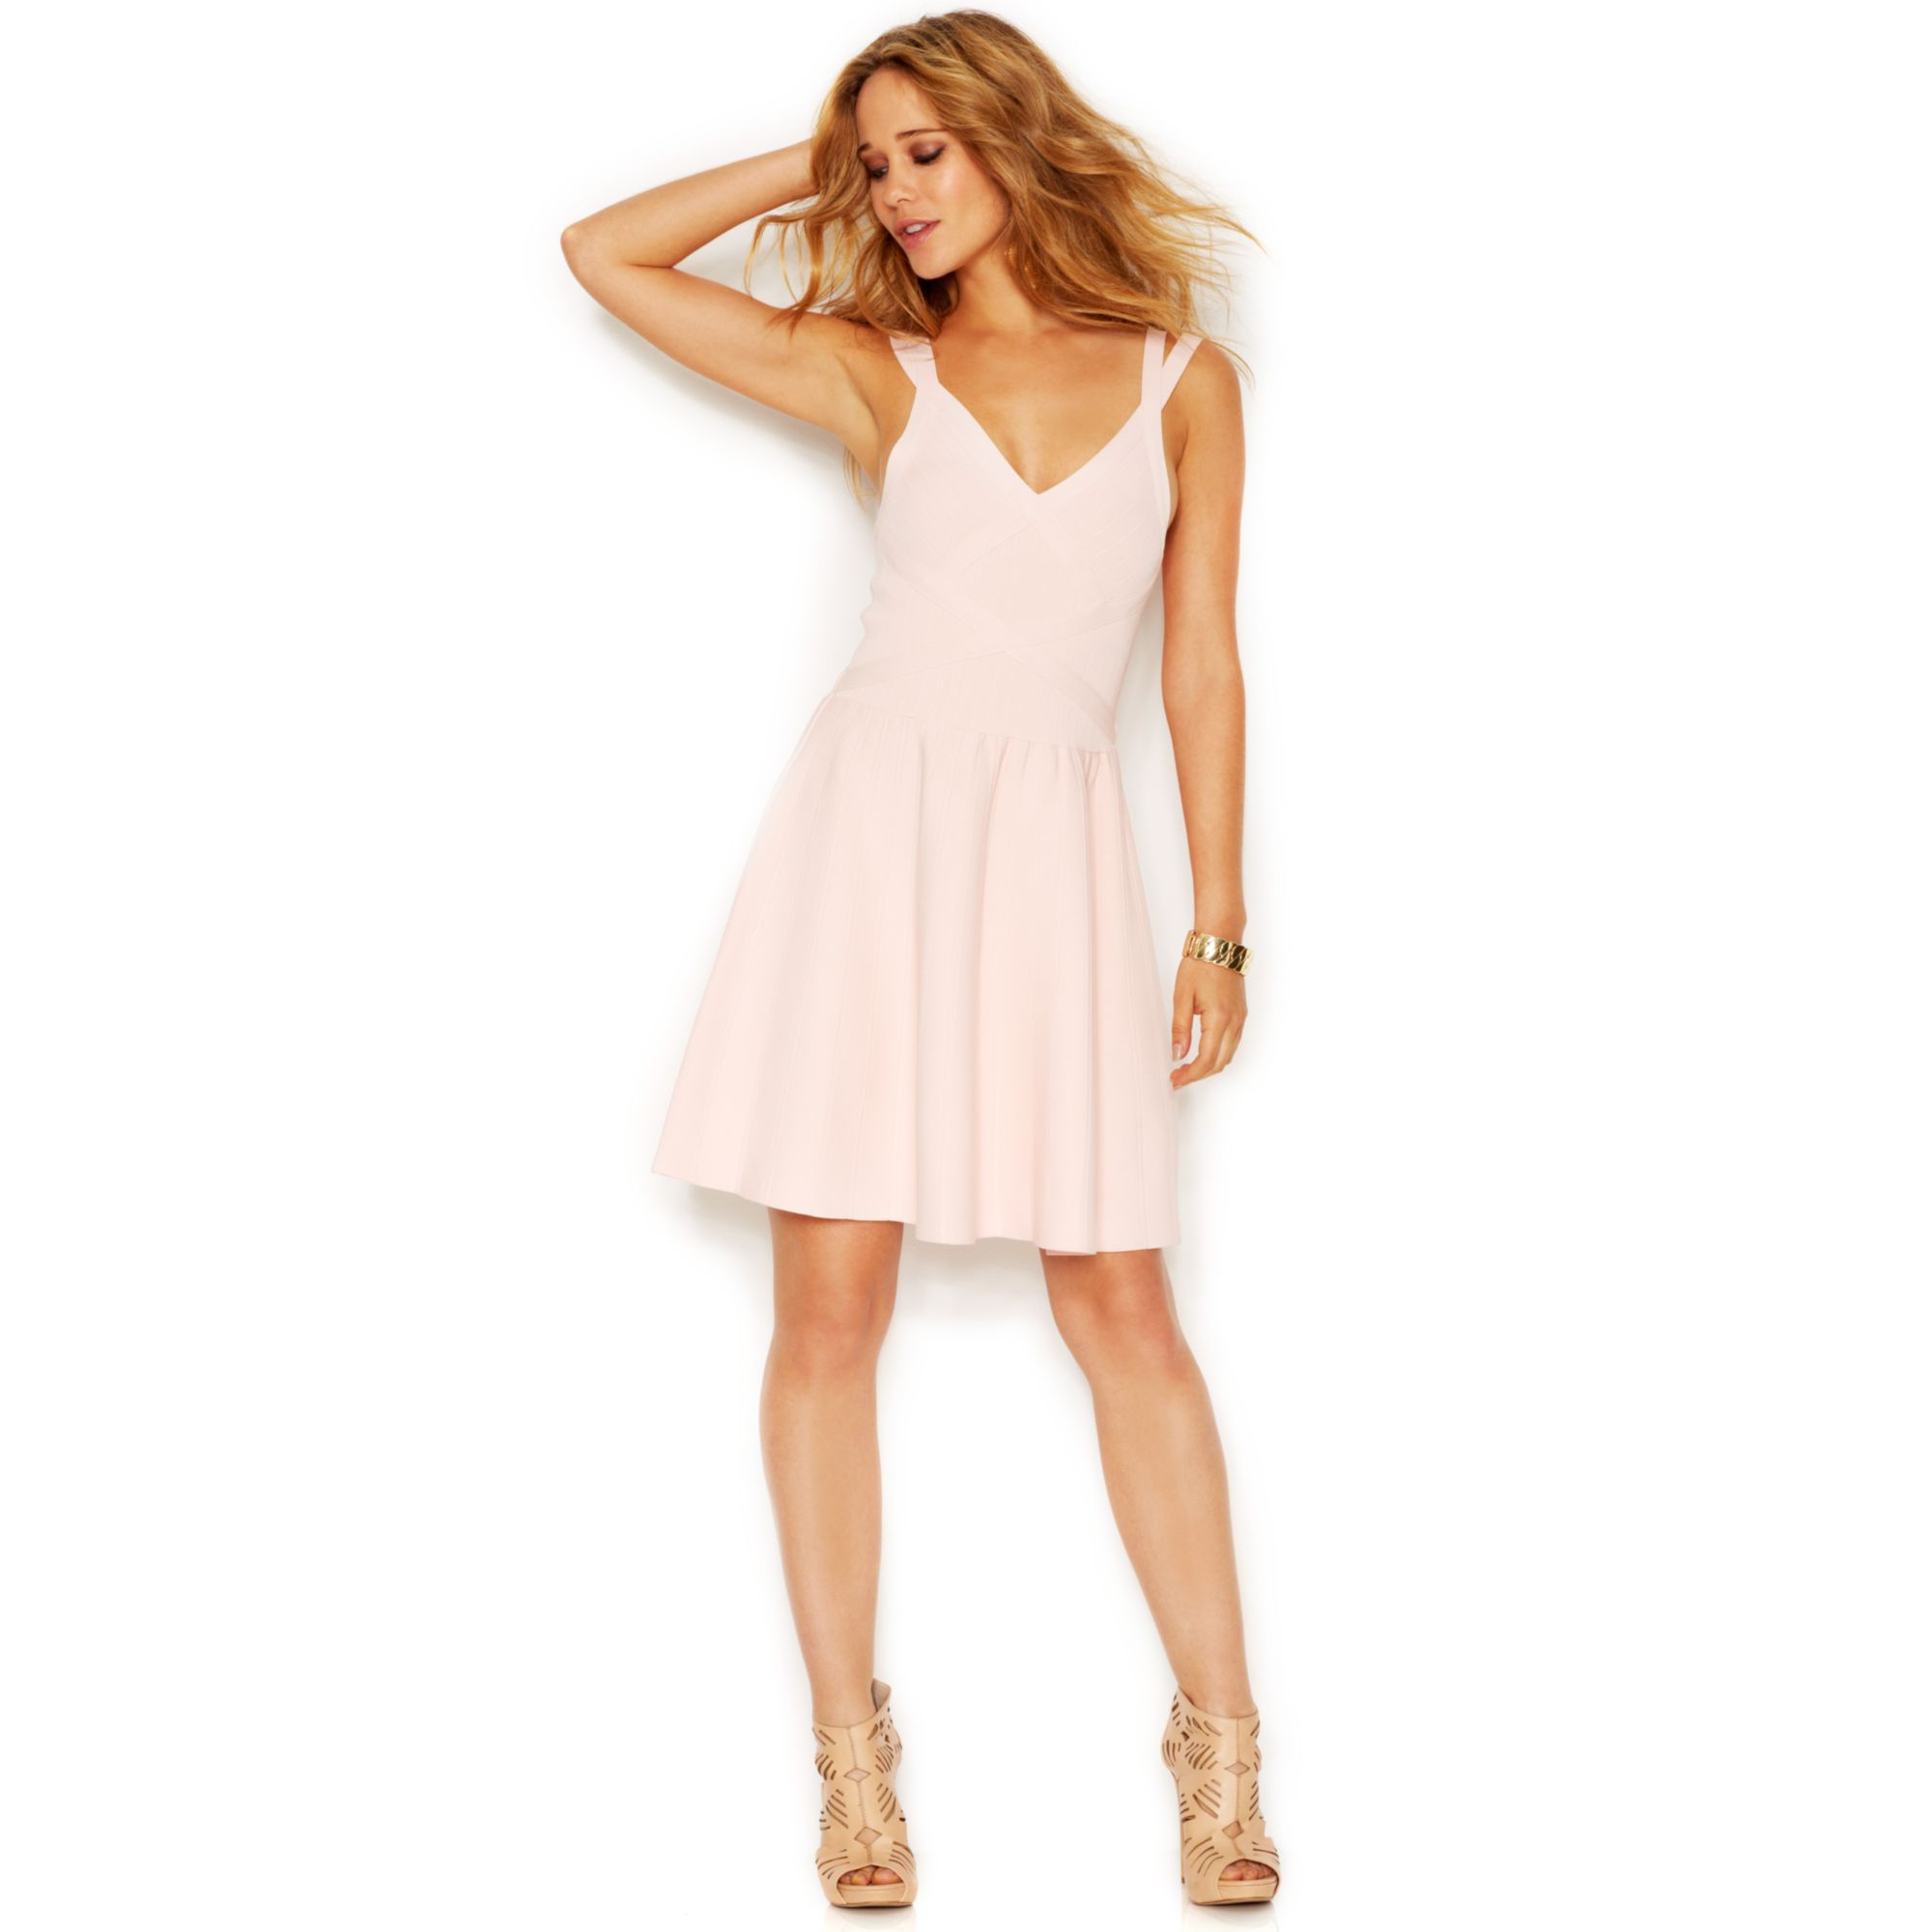 Guess Double Strap Flared Bandage Dress In Pink Iconic